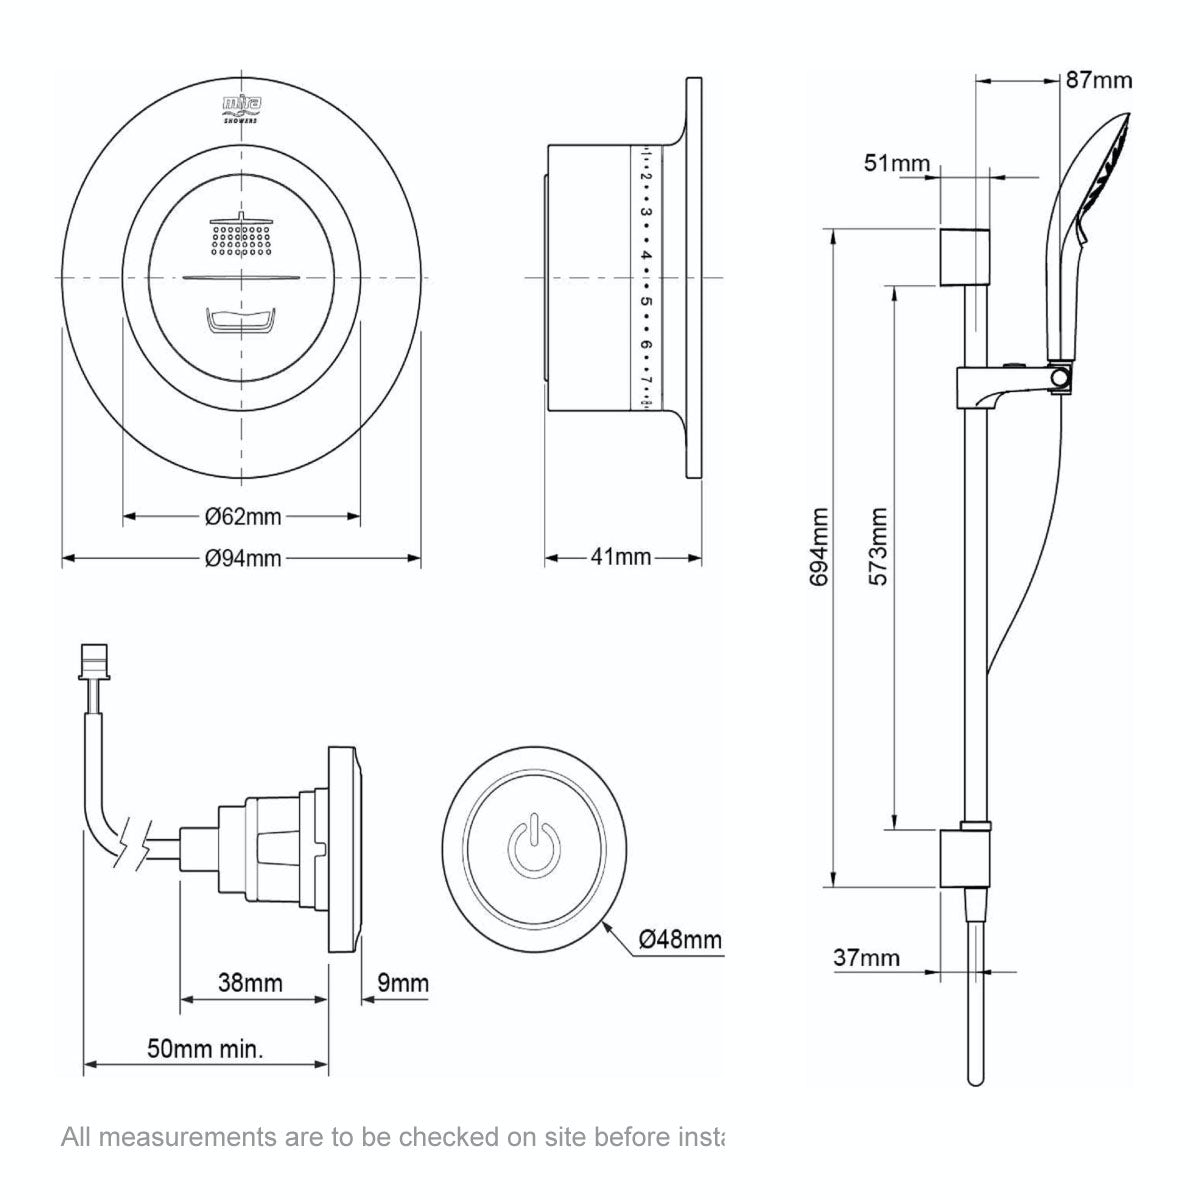 Dimensions for Mira Mode digital shower and bath filler standard